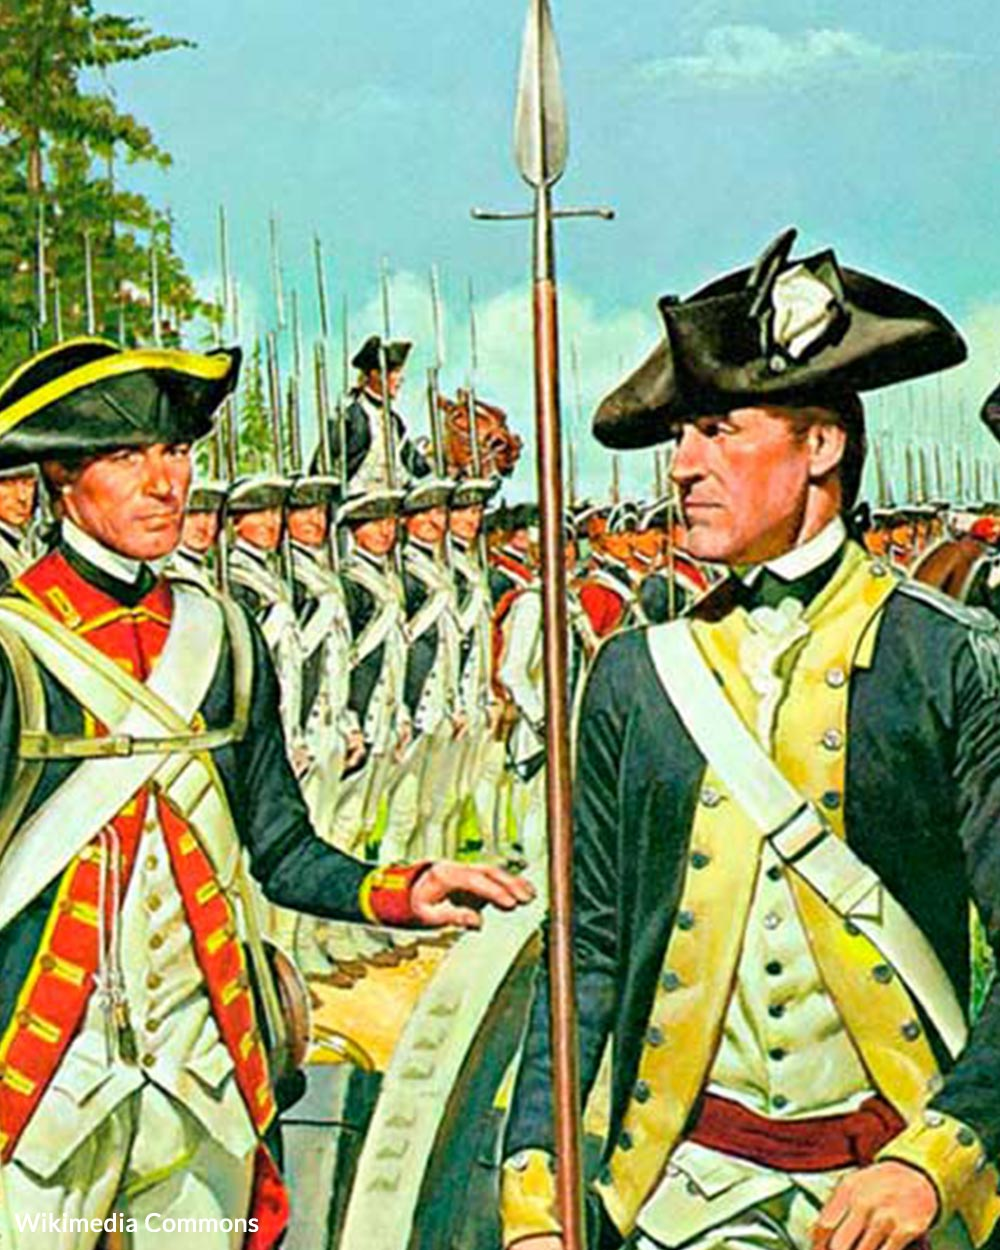 Members of the Miller family fought in the Revolutionary War.